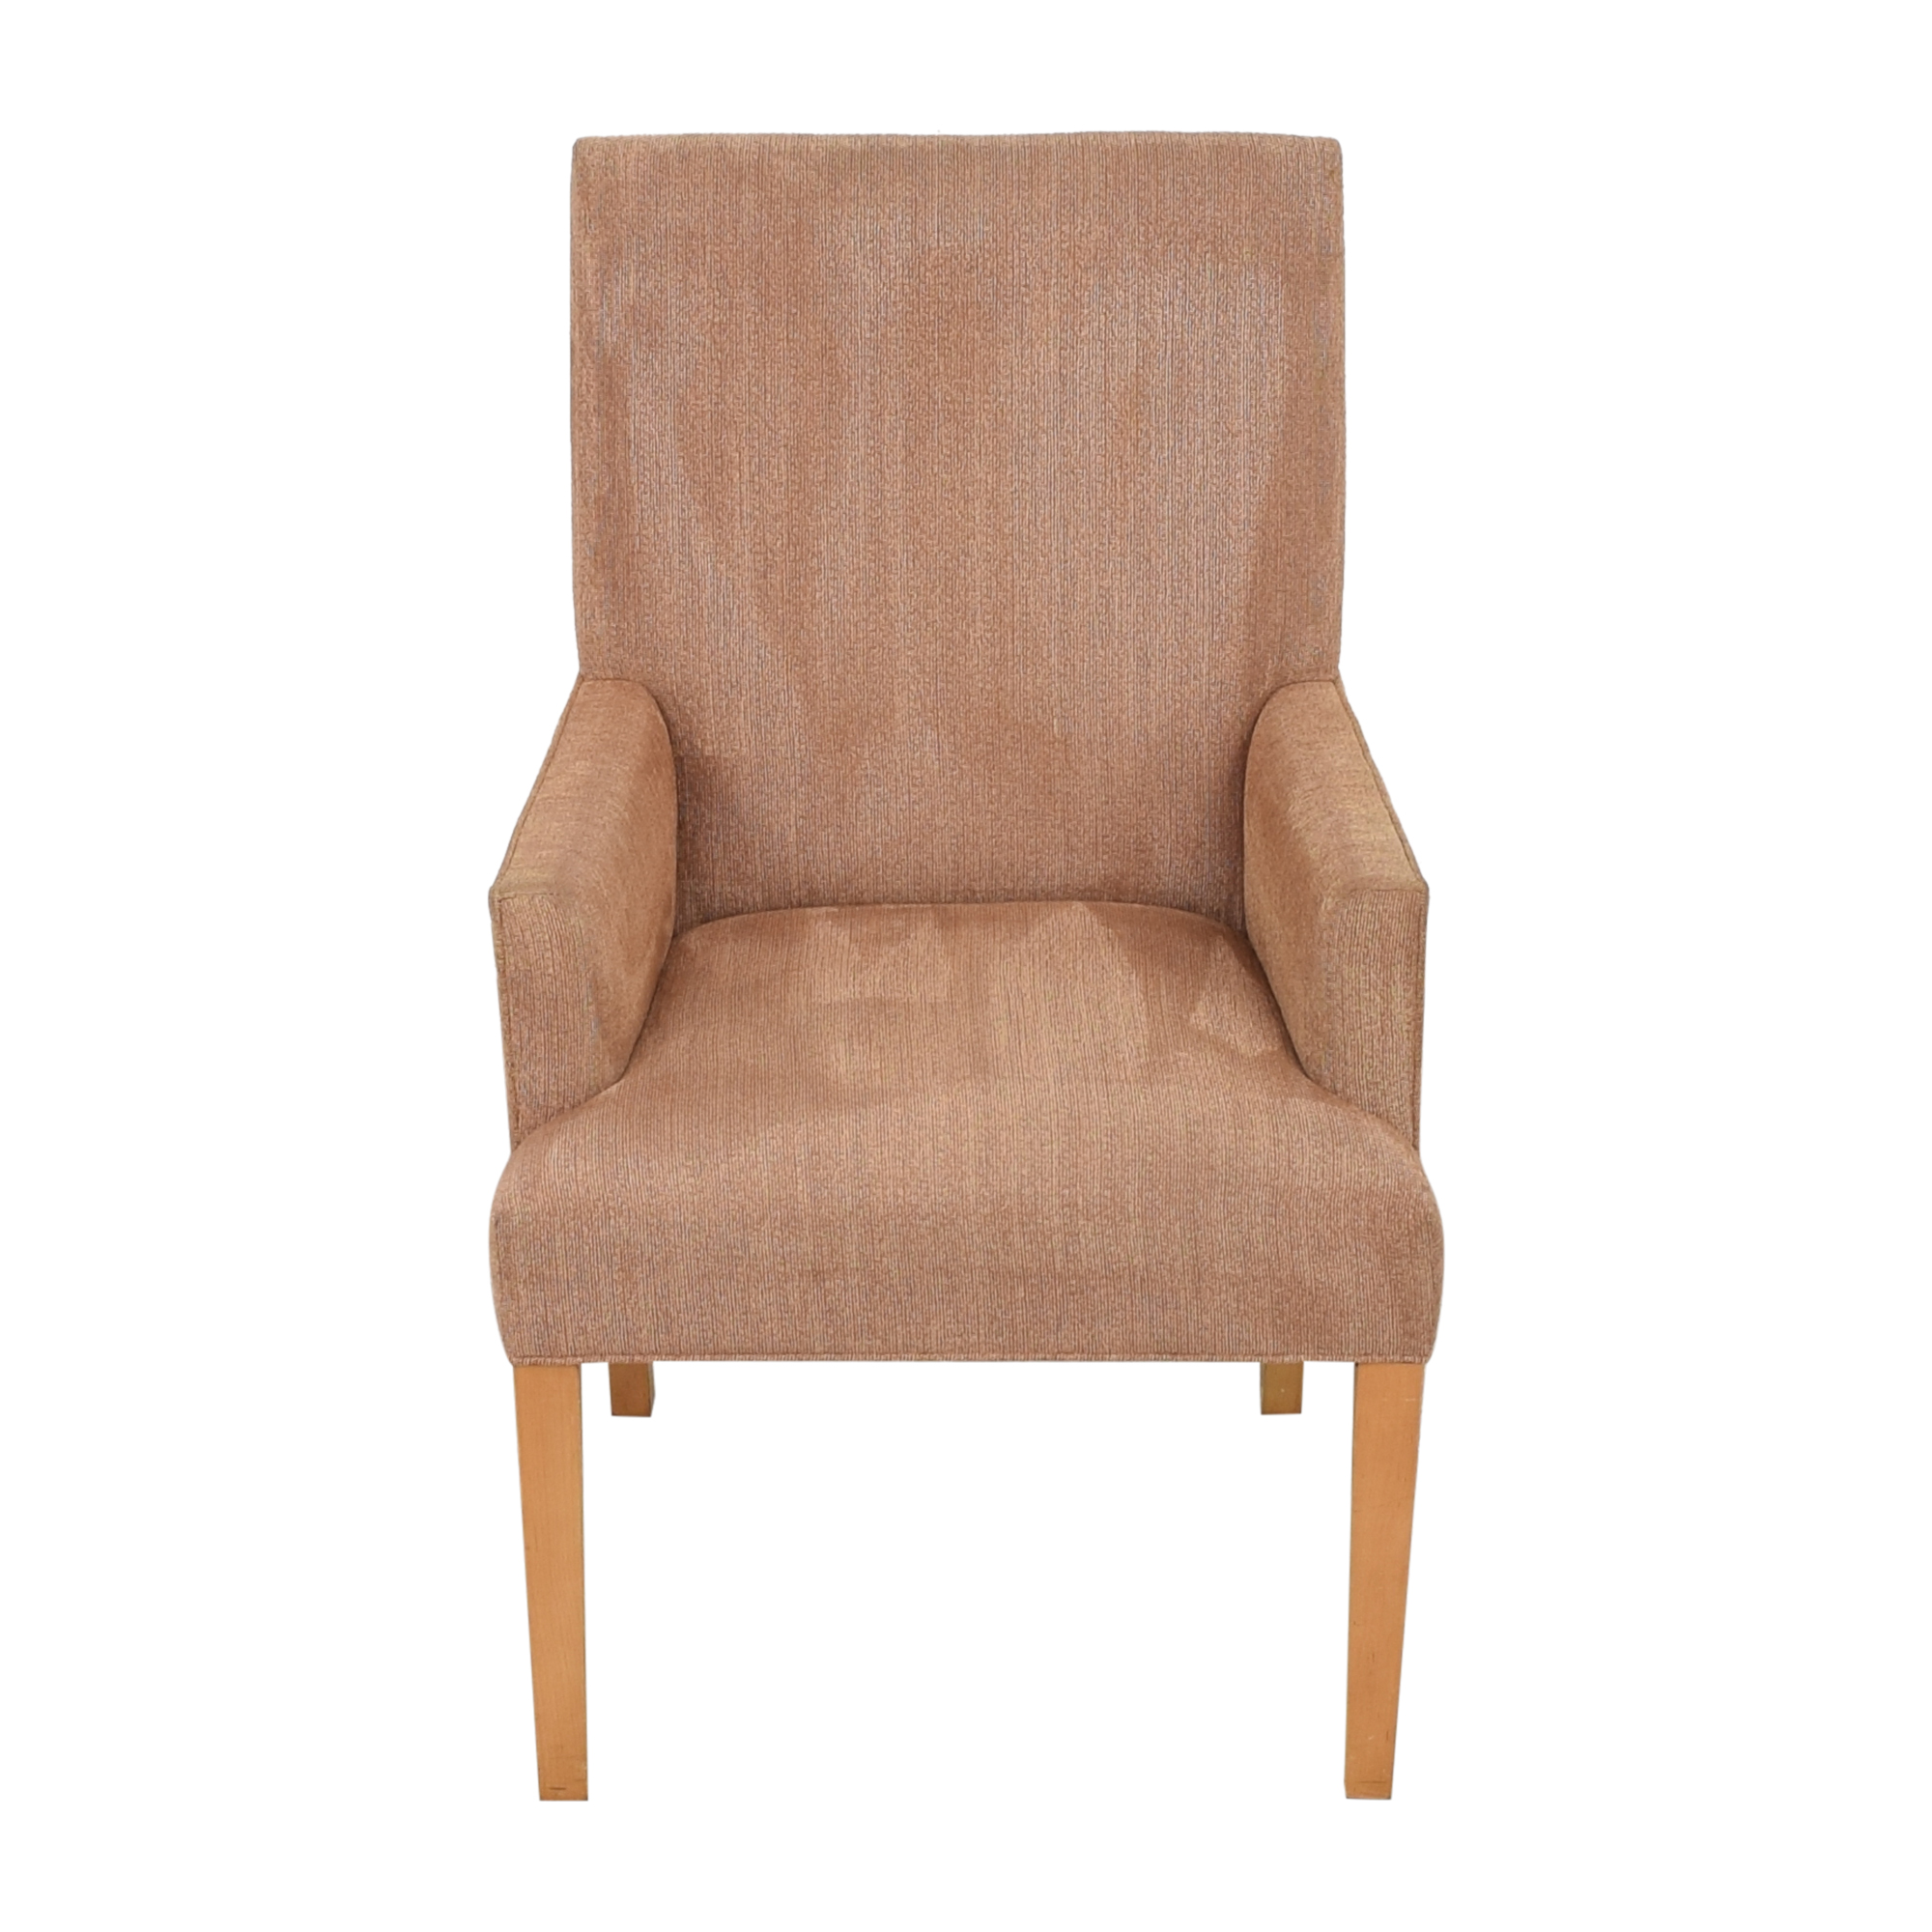 Ethan Allen Thomas Armchair / Accent Chairs